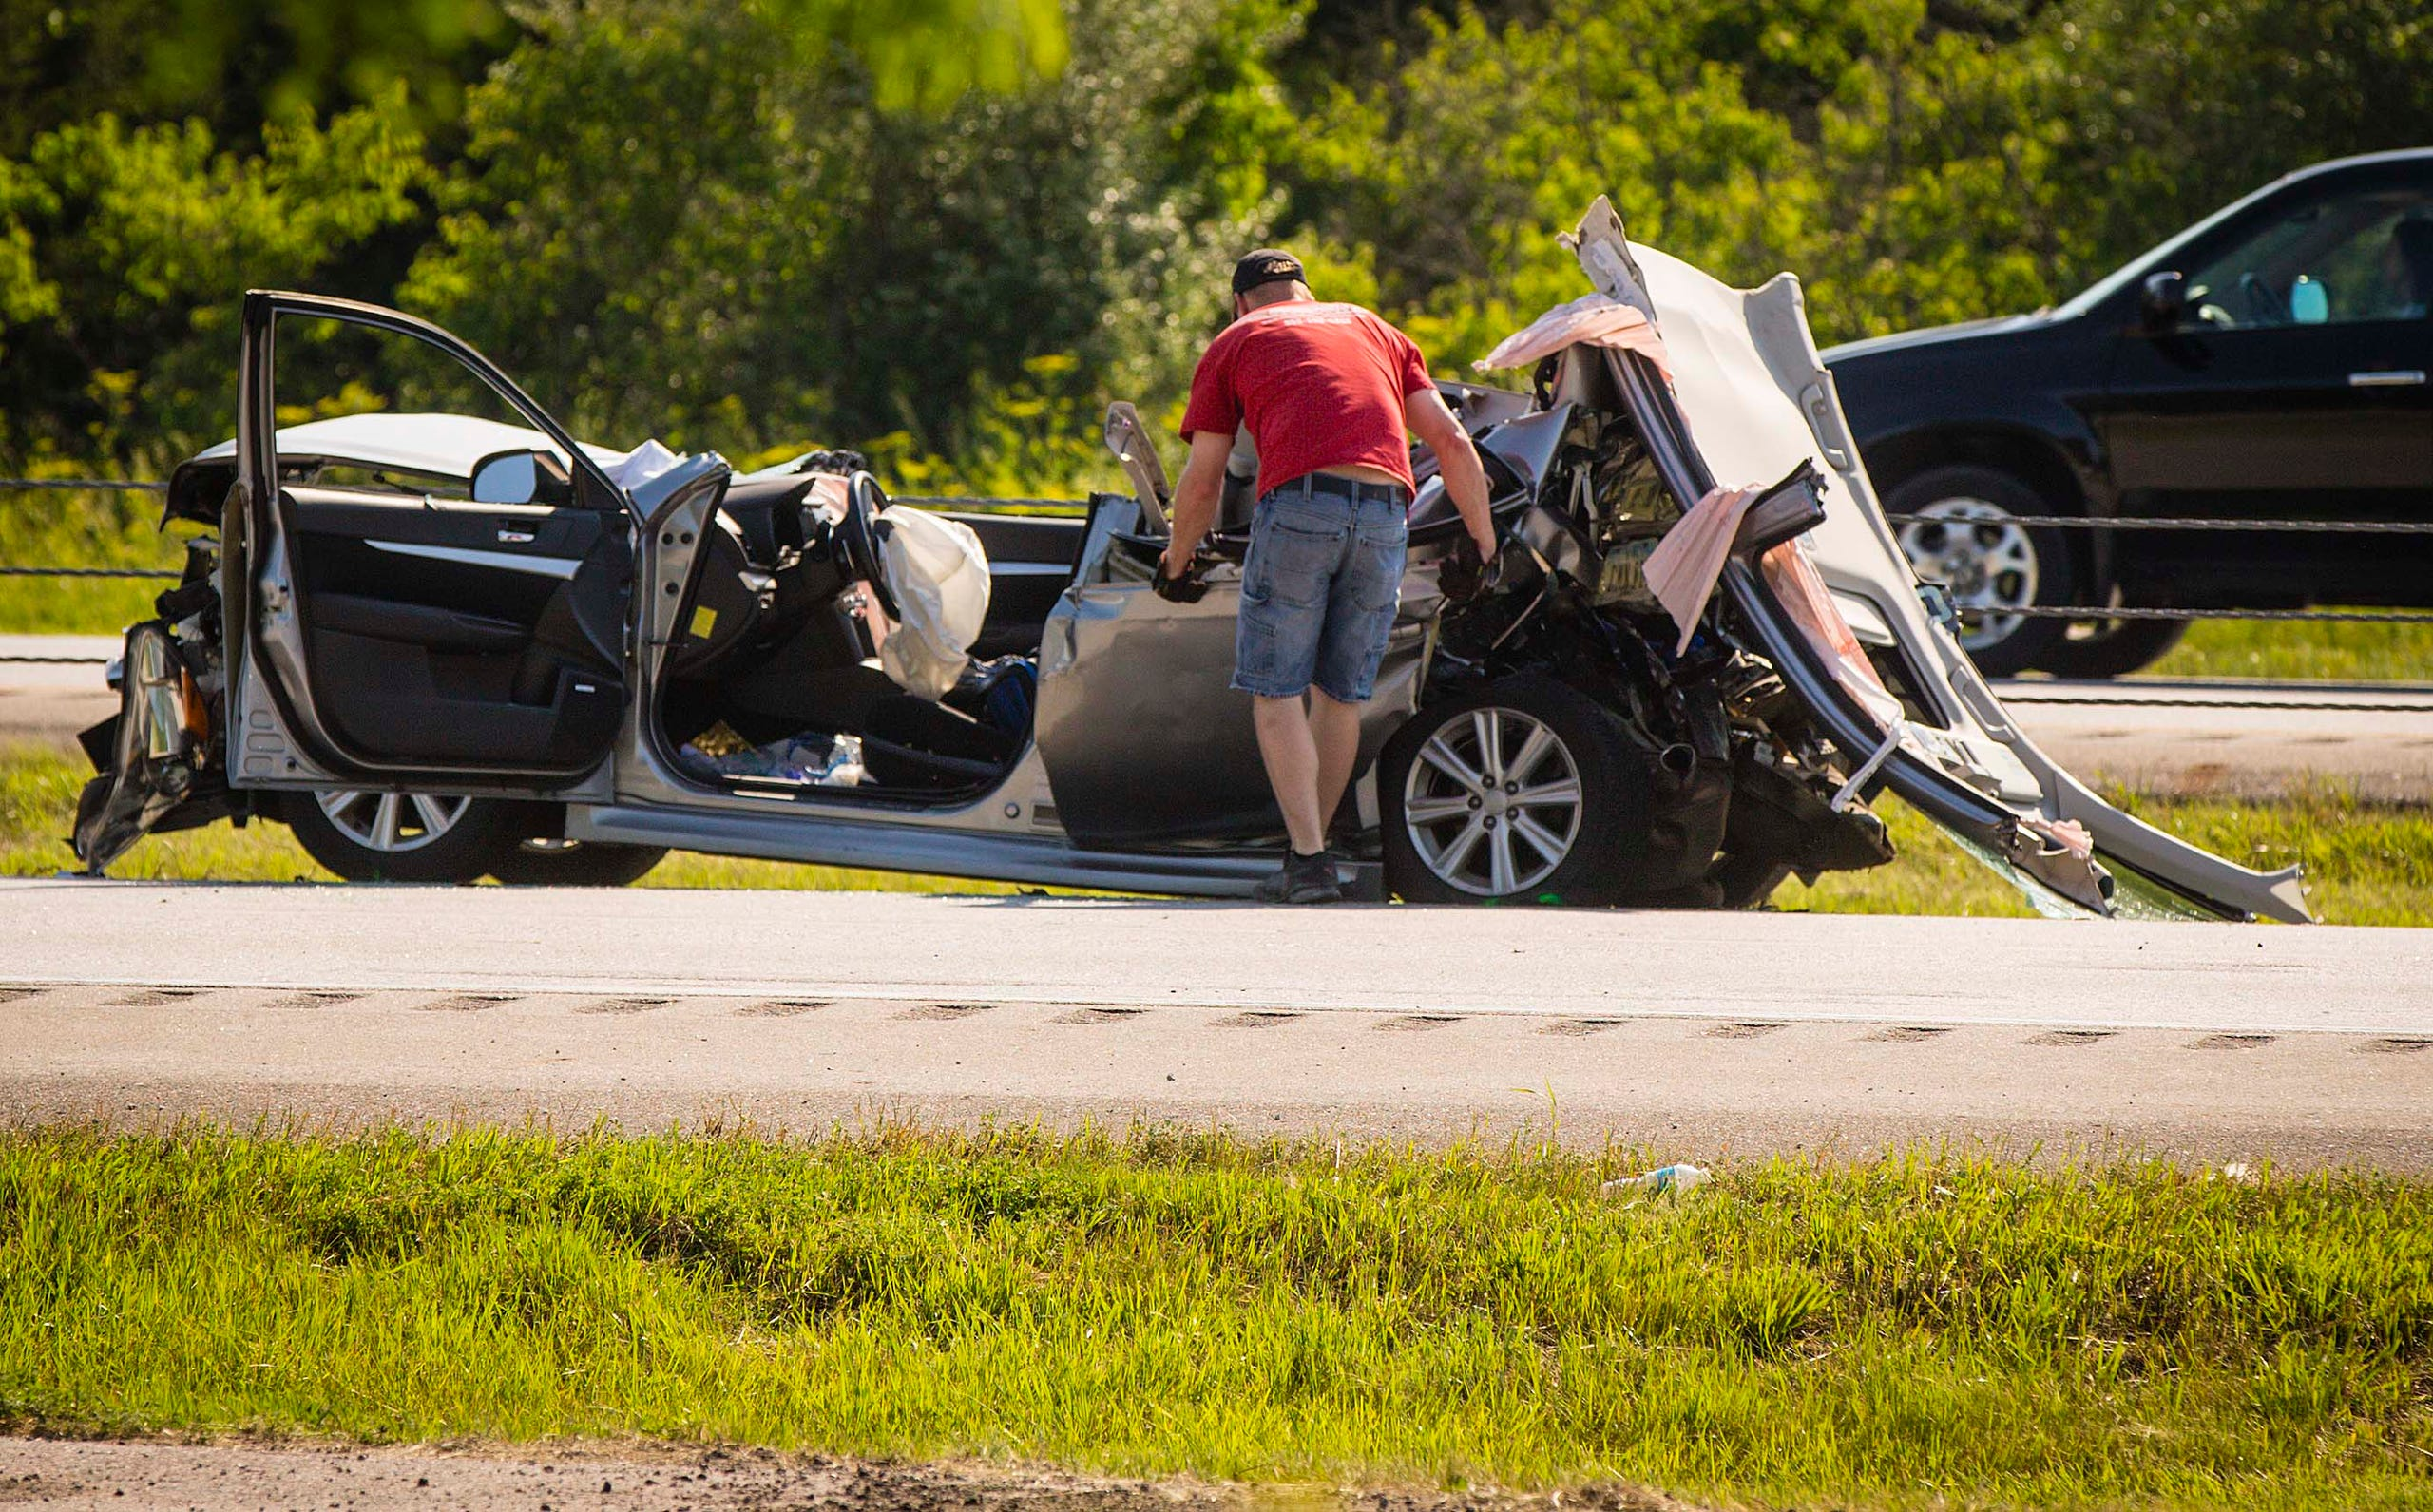 8 photos: Fatal accident closes I-35 in Ankeny